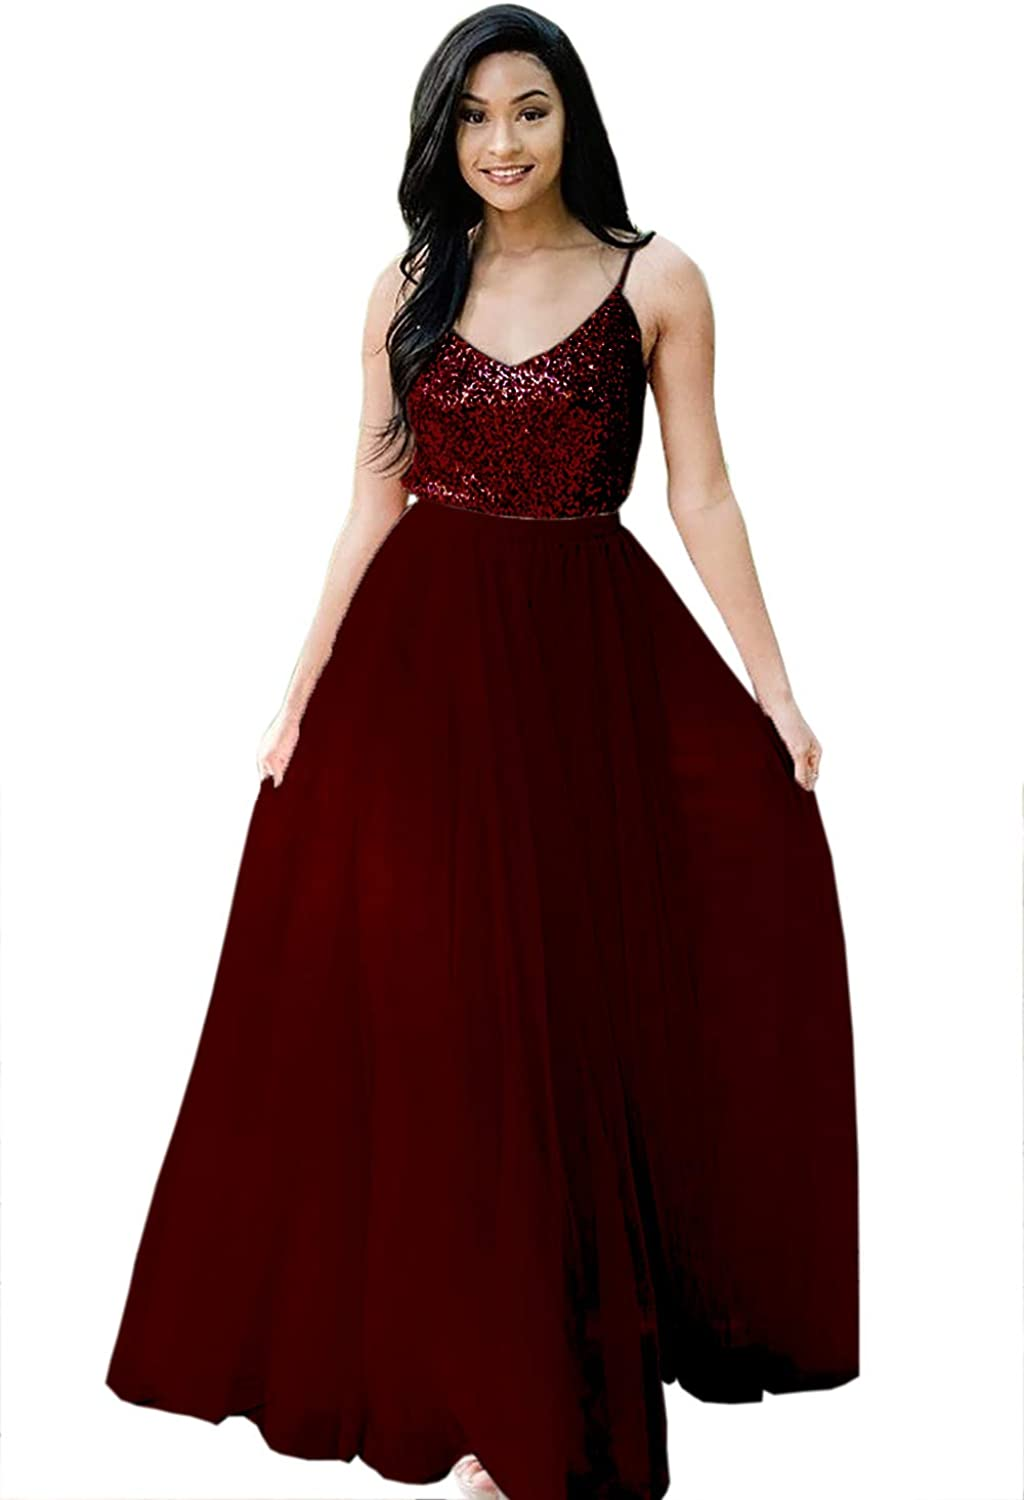 Karever Bridesmaid Dresses Two Pieces Sequin Long Prom Dress Spaghetti Backless Wedding Party Evening Gowns